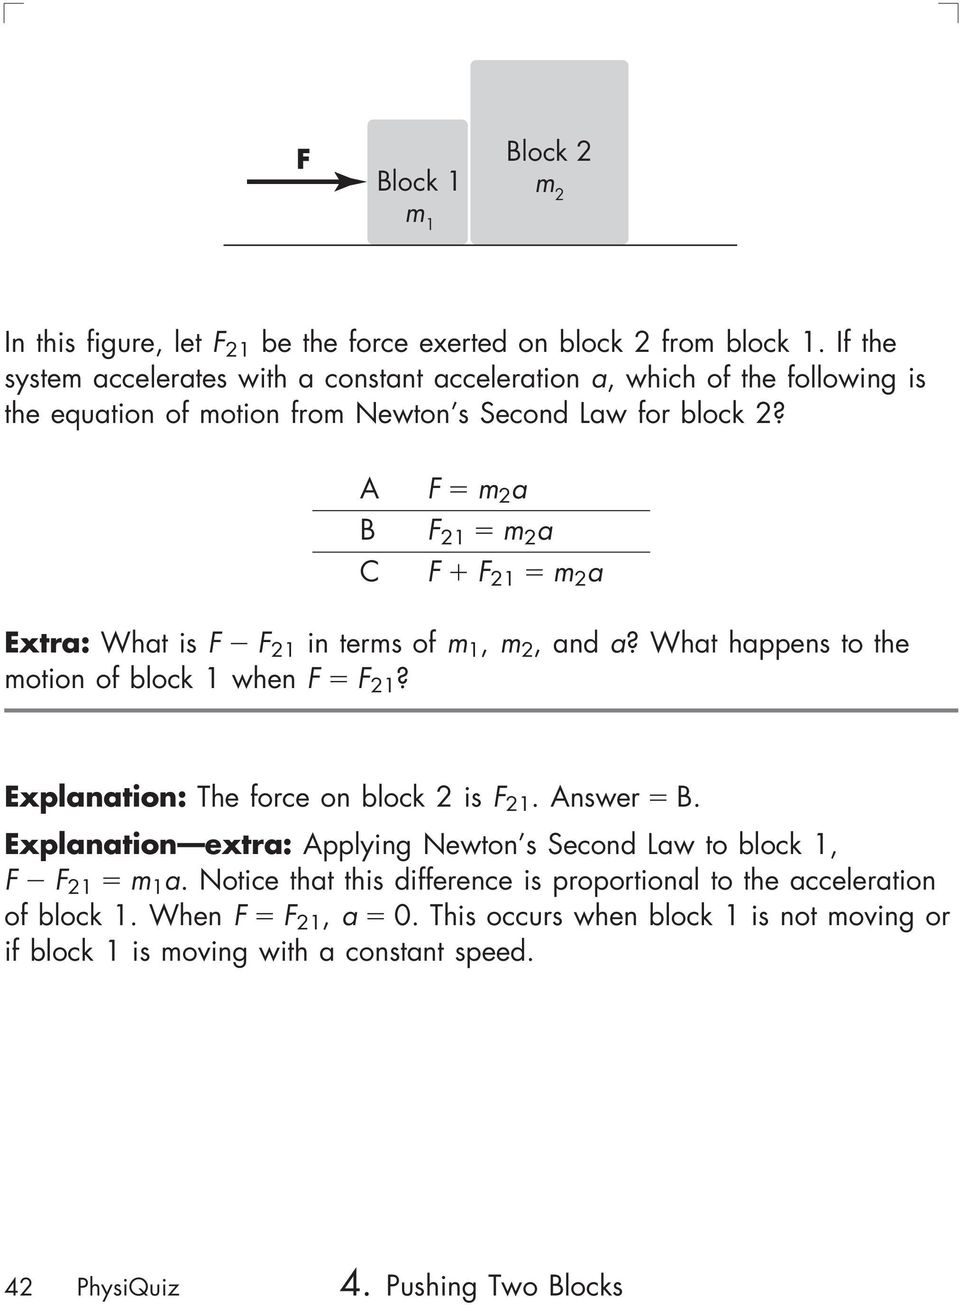 A B C F m 2 a F 21 m 2 a F F 21 m 2 a Extra: What is F F 21 in terms of m 1, m 2, and a? What happens to the motion of block 1 when F F 21?